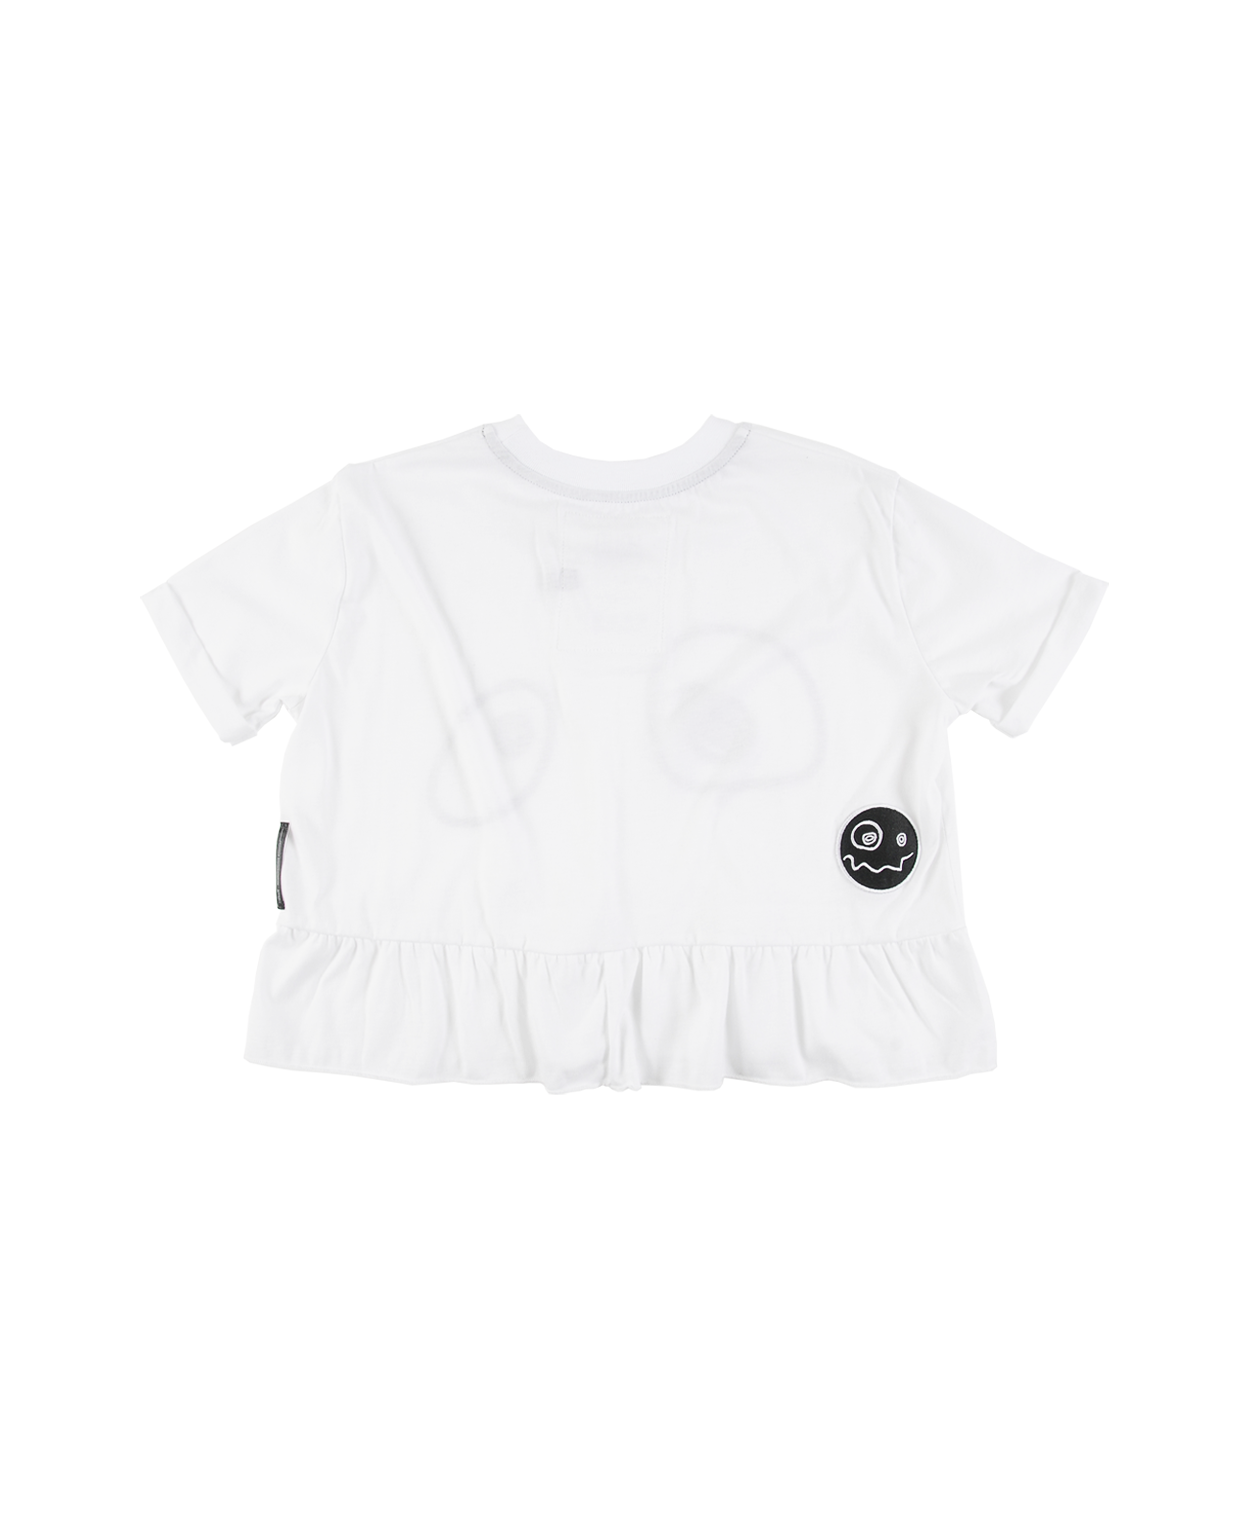 LOUD White Maddy Peplum Tee - Ladida